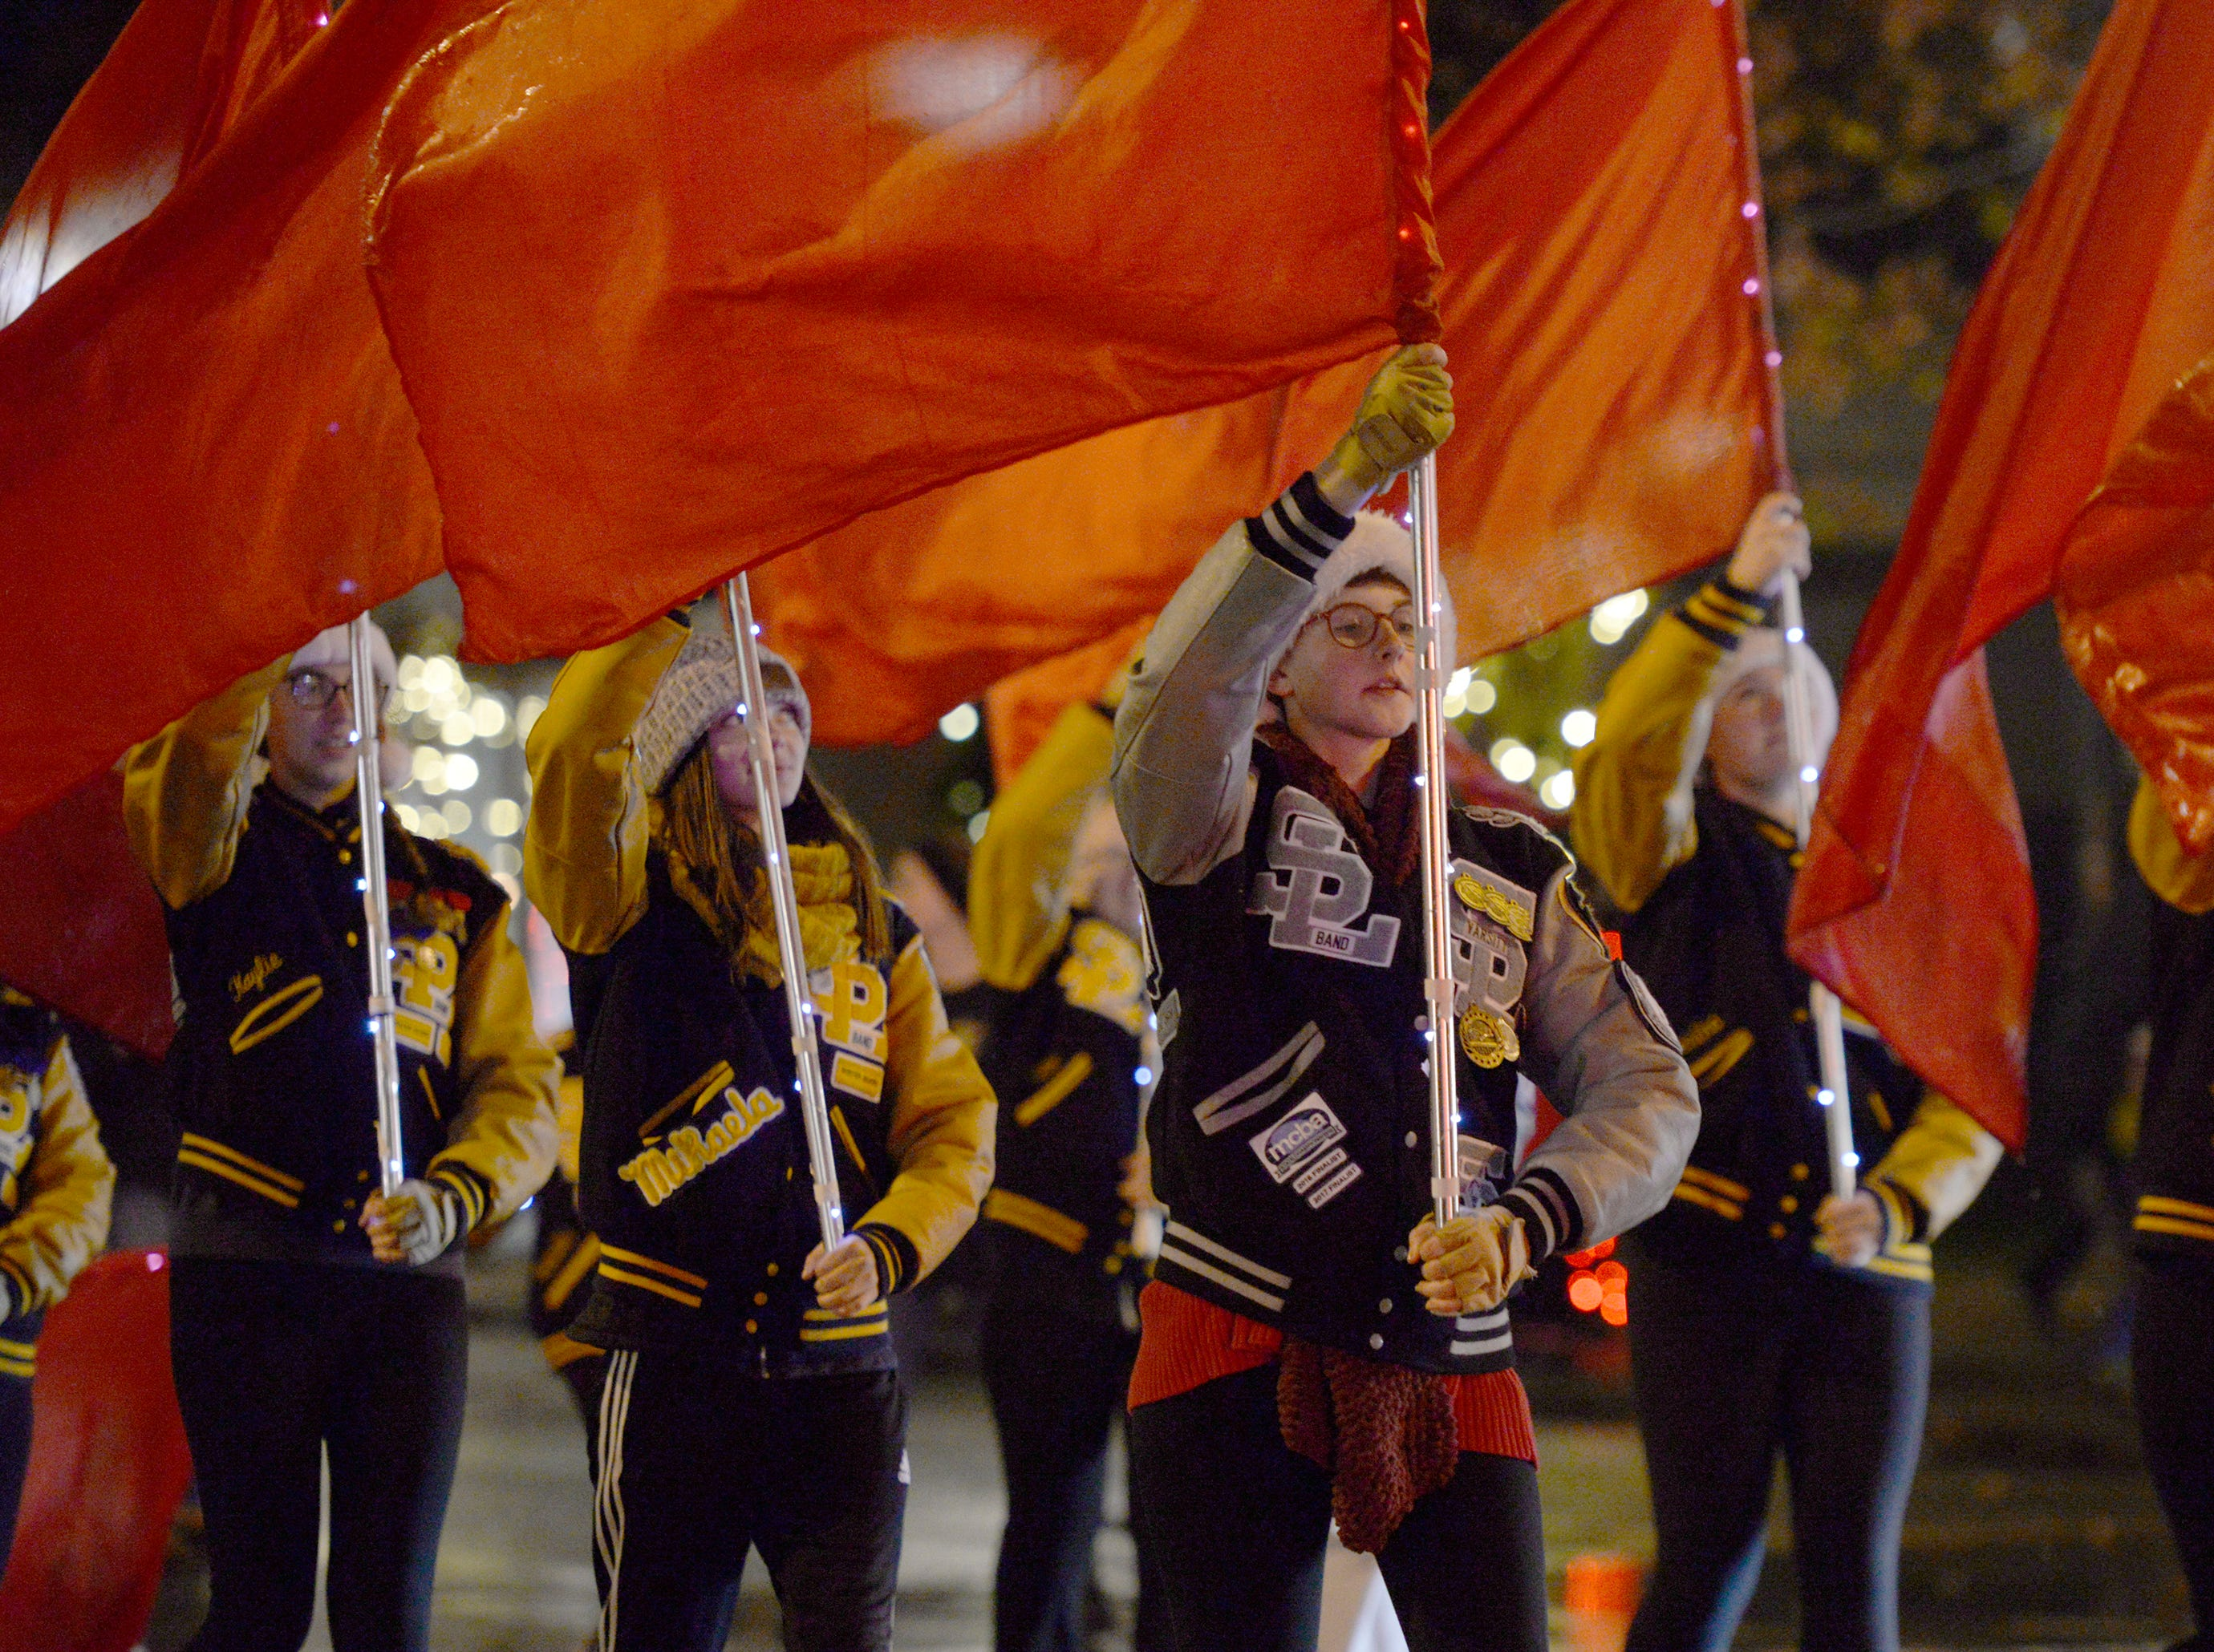 South Lyon High School Marching Band color guard perform during the Lighted Parade Dec. 1, 2018.